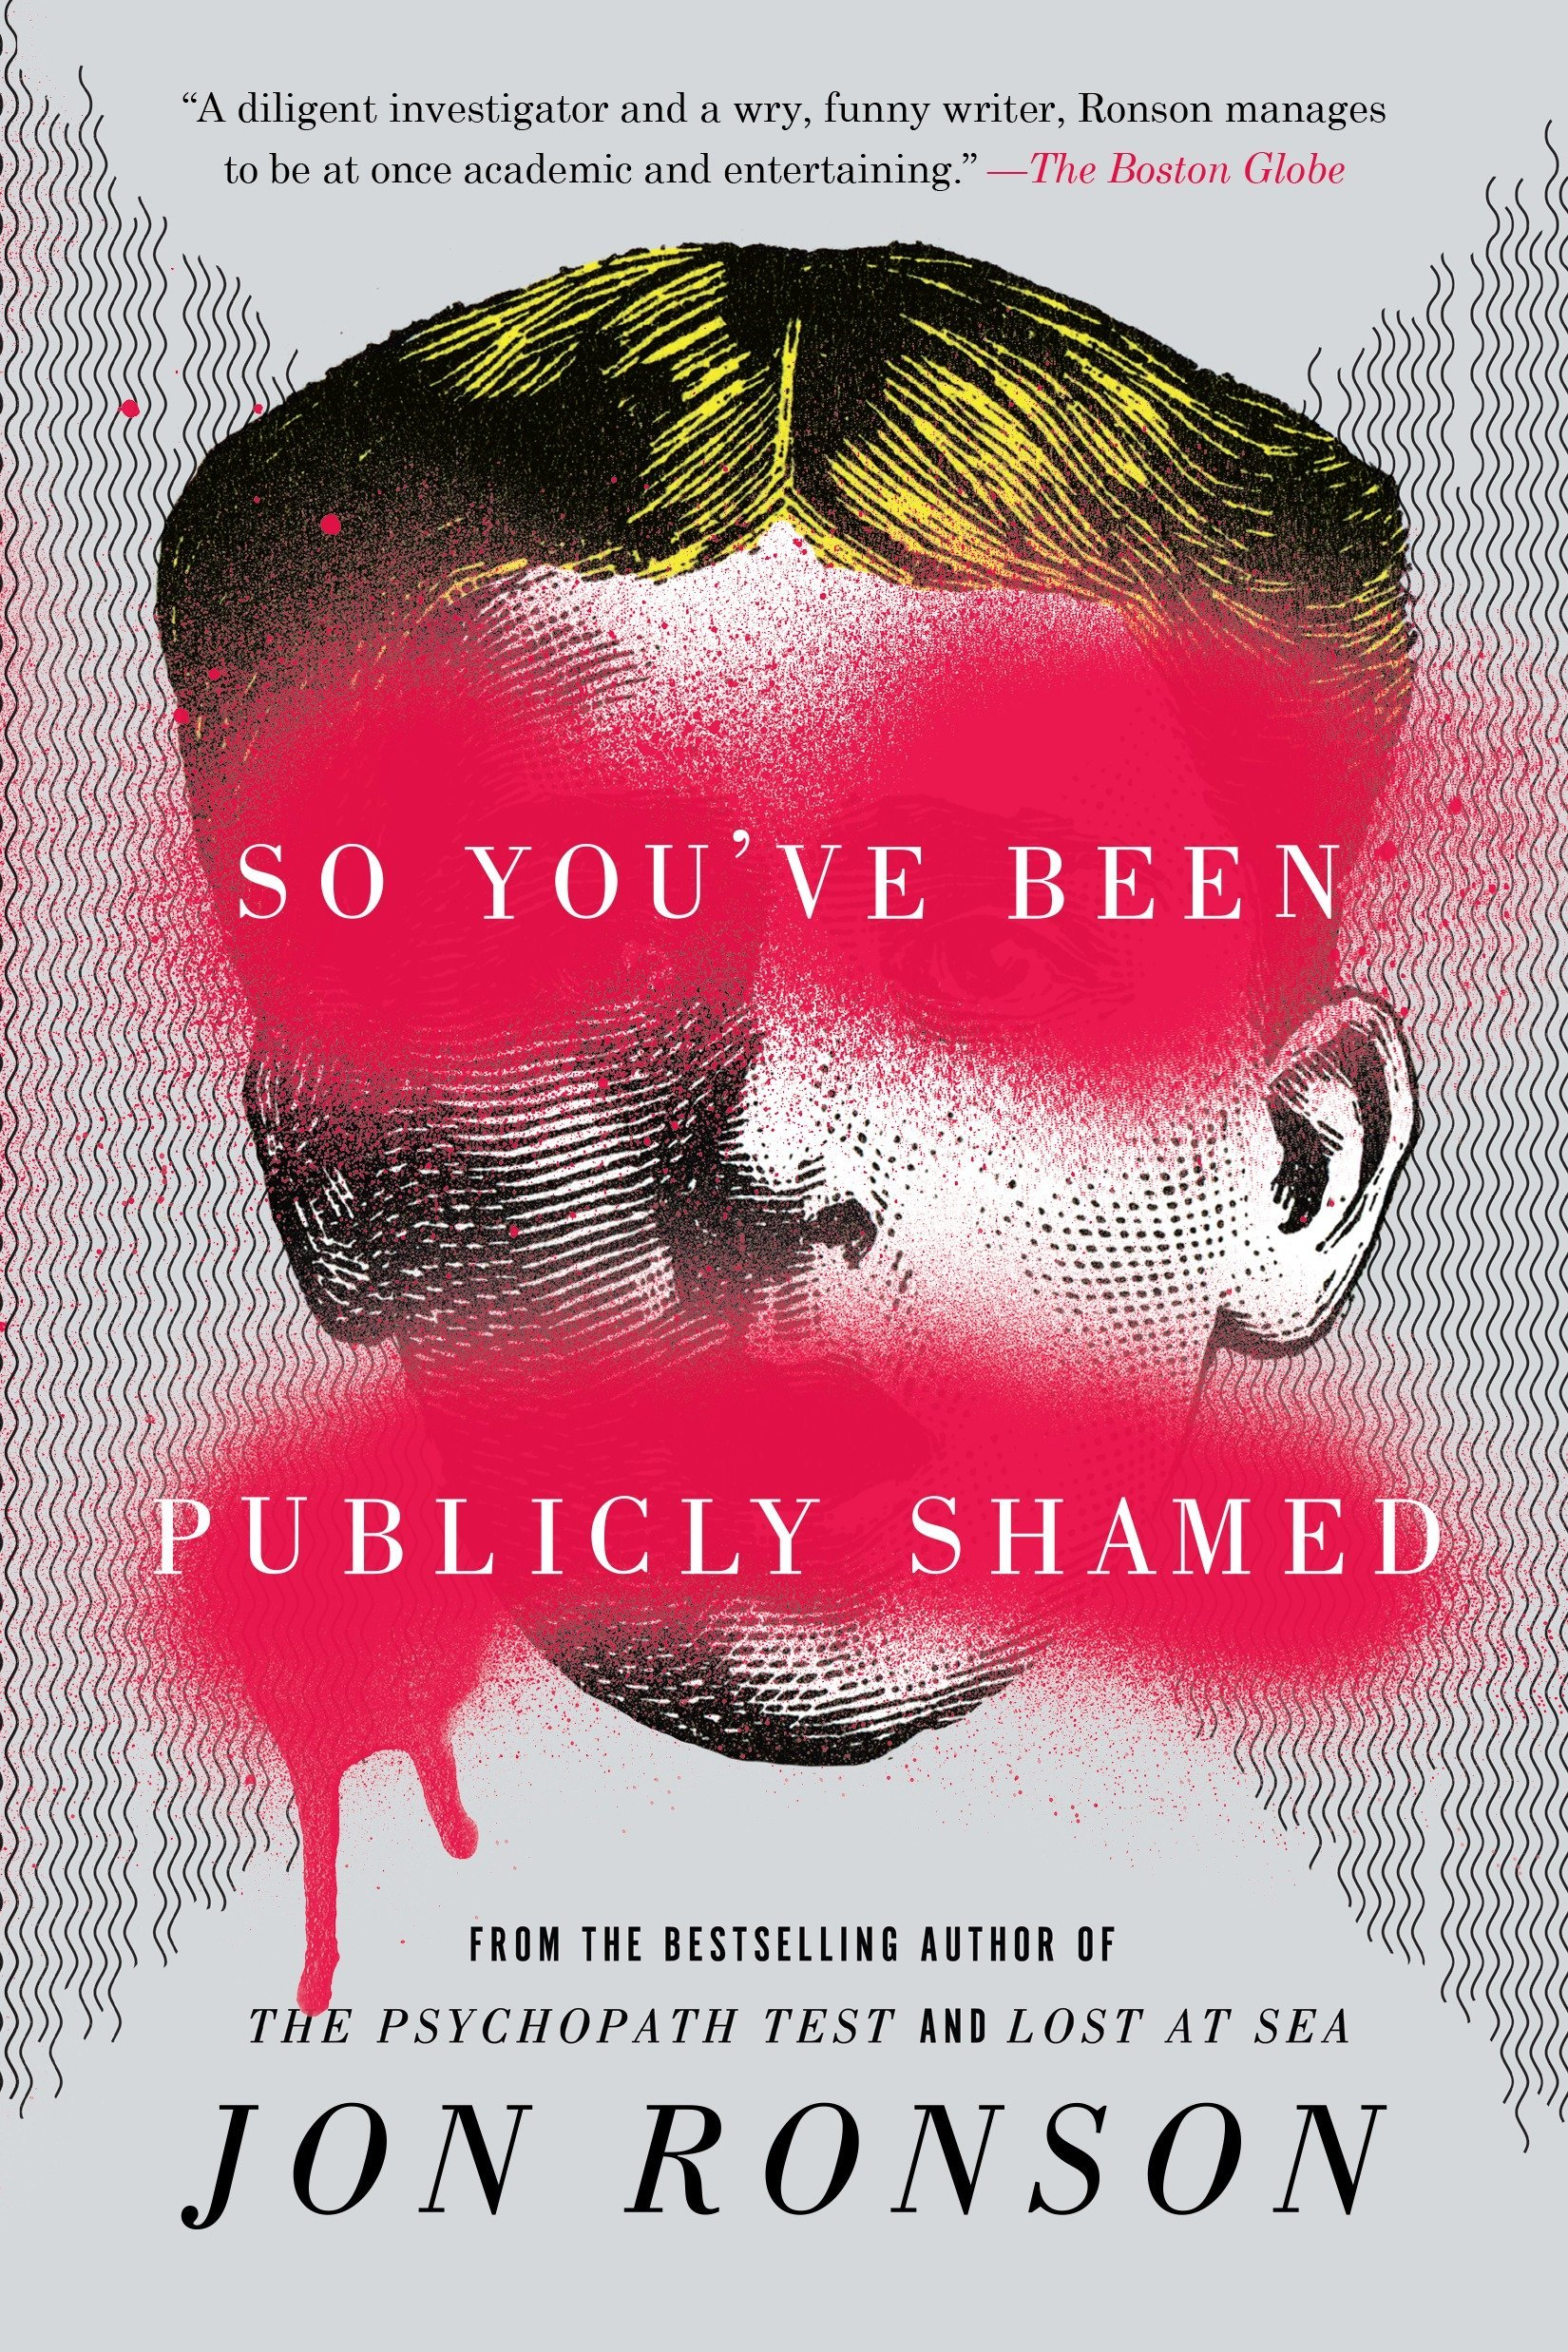 So Youve Been Publicly Shamed Jon Ronson 9781594634017 Amazon